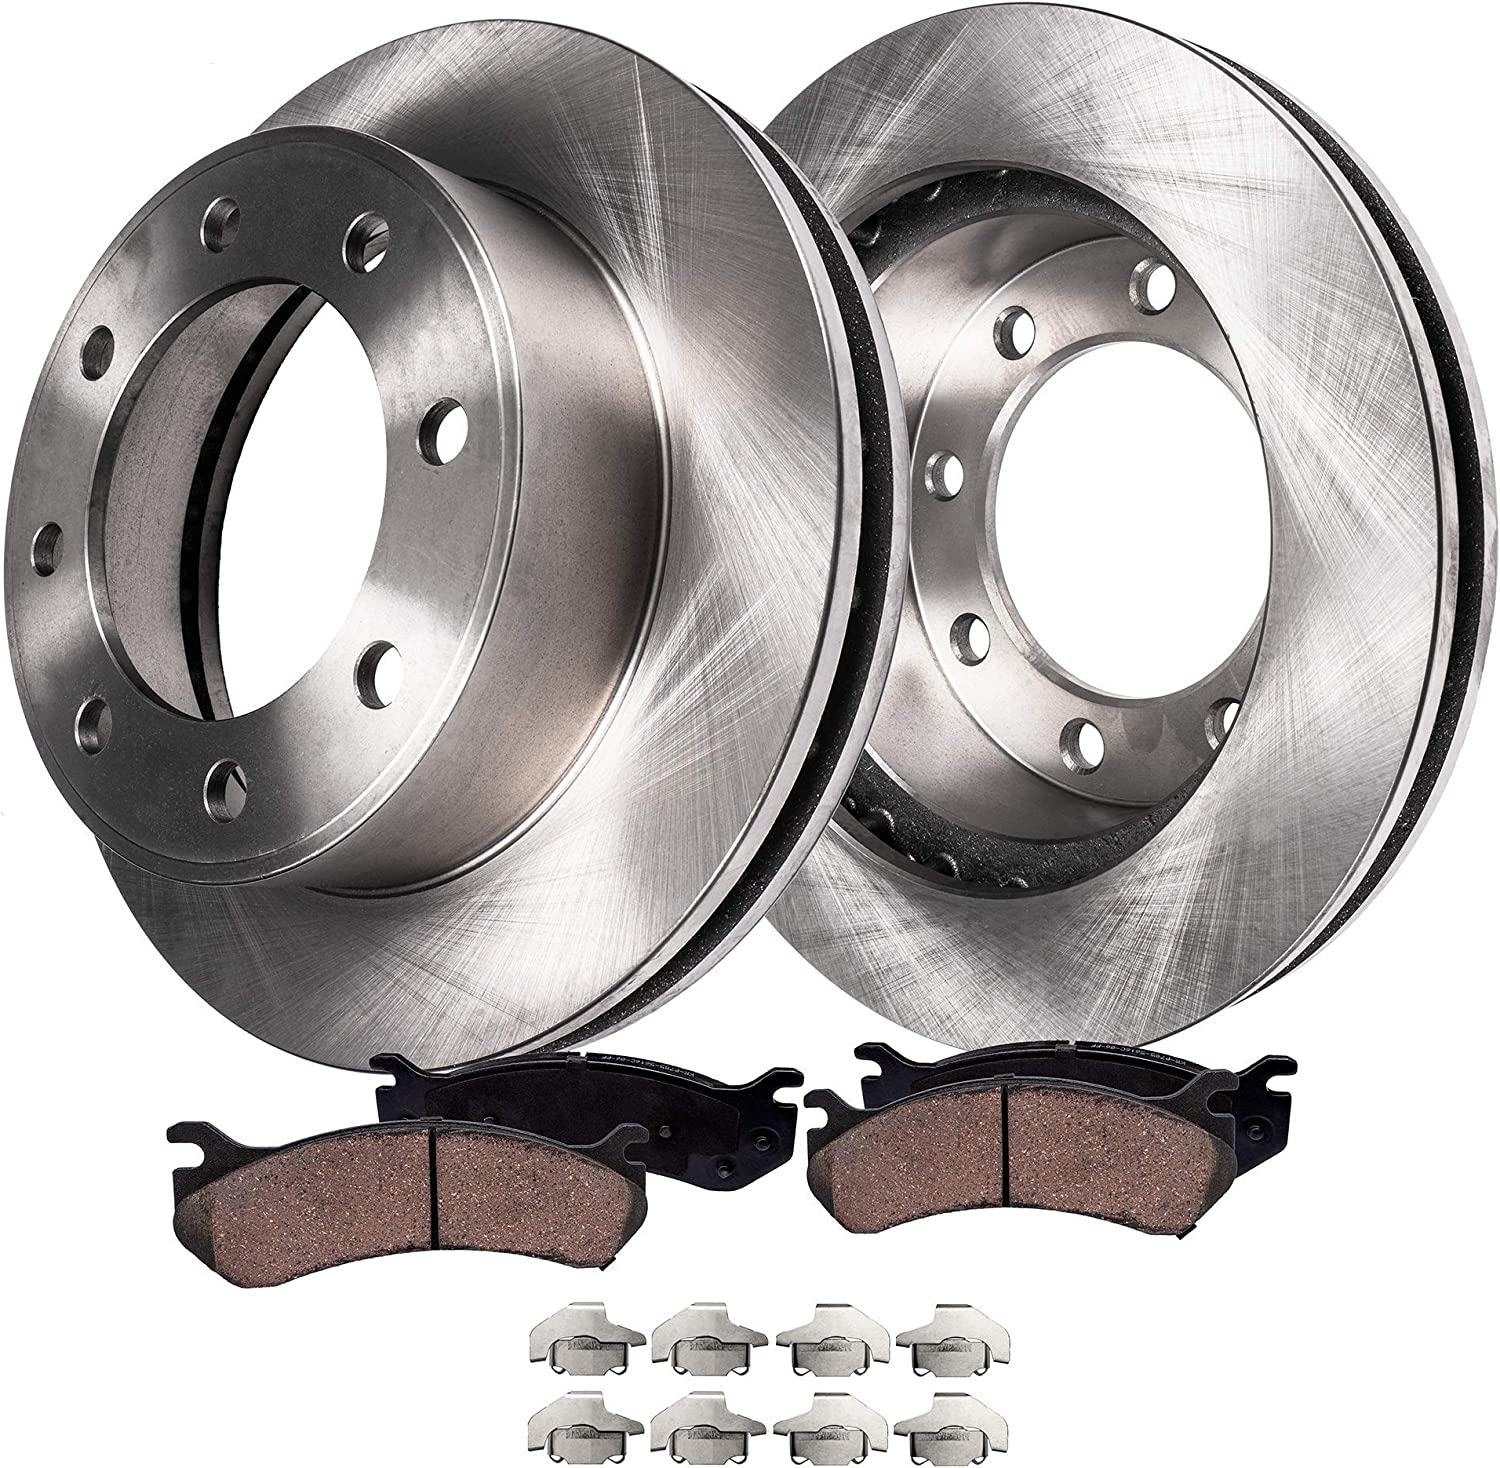 Rotors Metallic Pads F OE Replacement 2005 2006 Ford F250 Super Duty 4WD